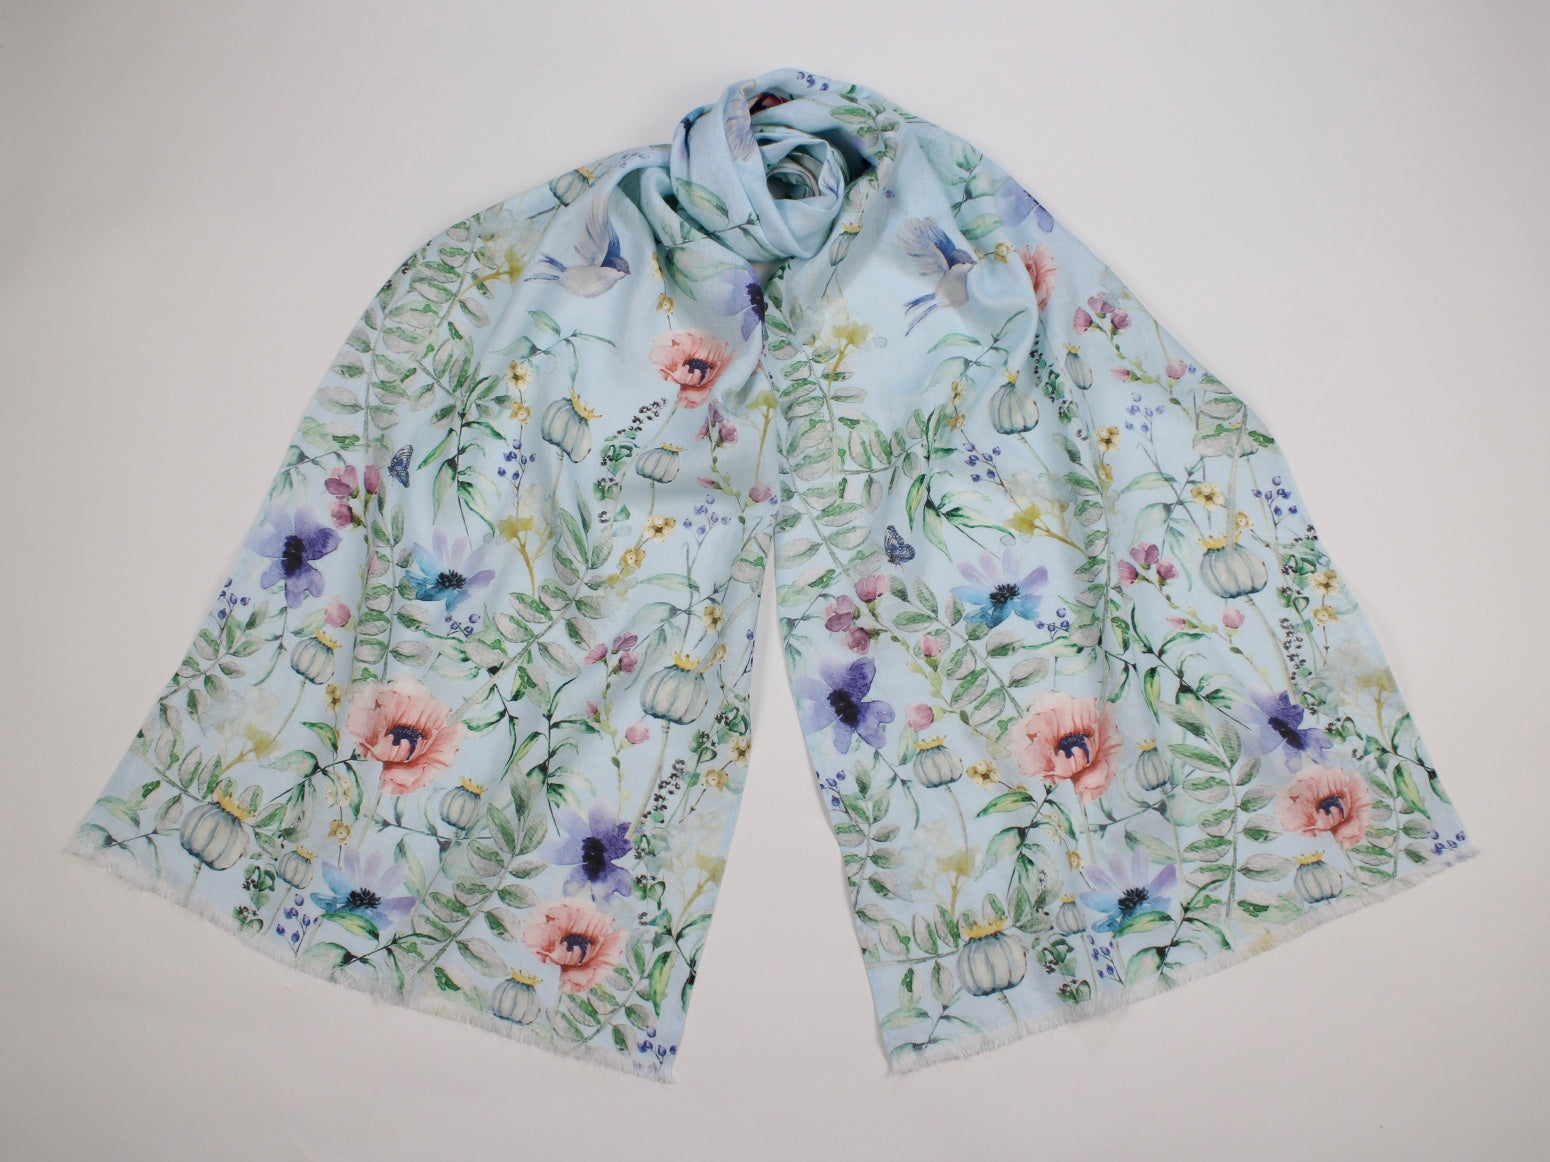 Linen Scarf Watercolor Florals, Birds & Butterflies Blue